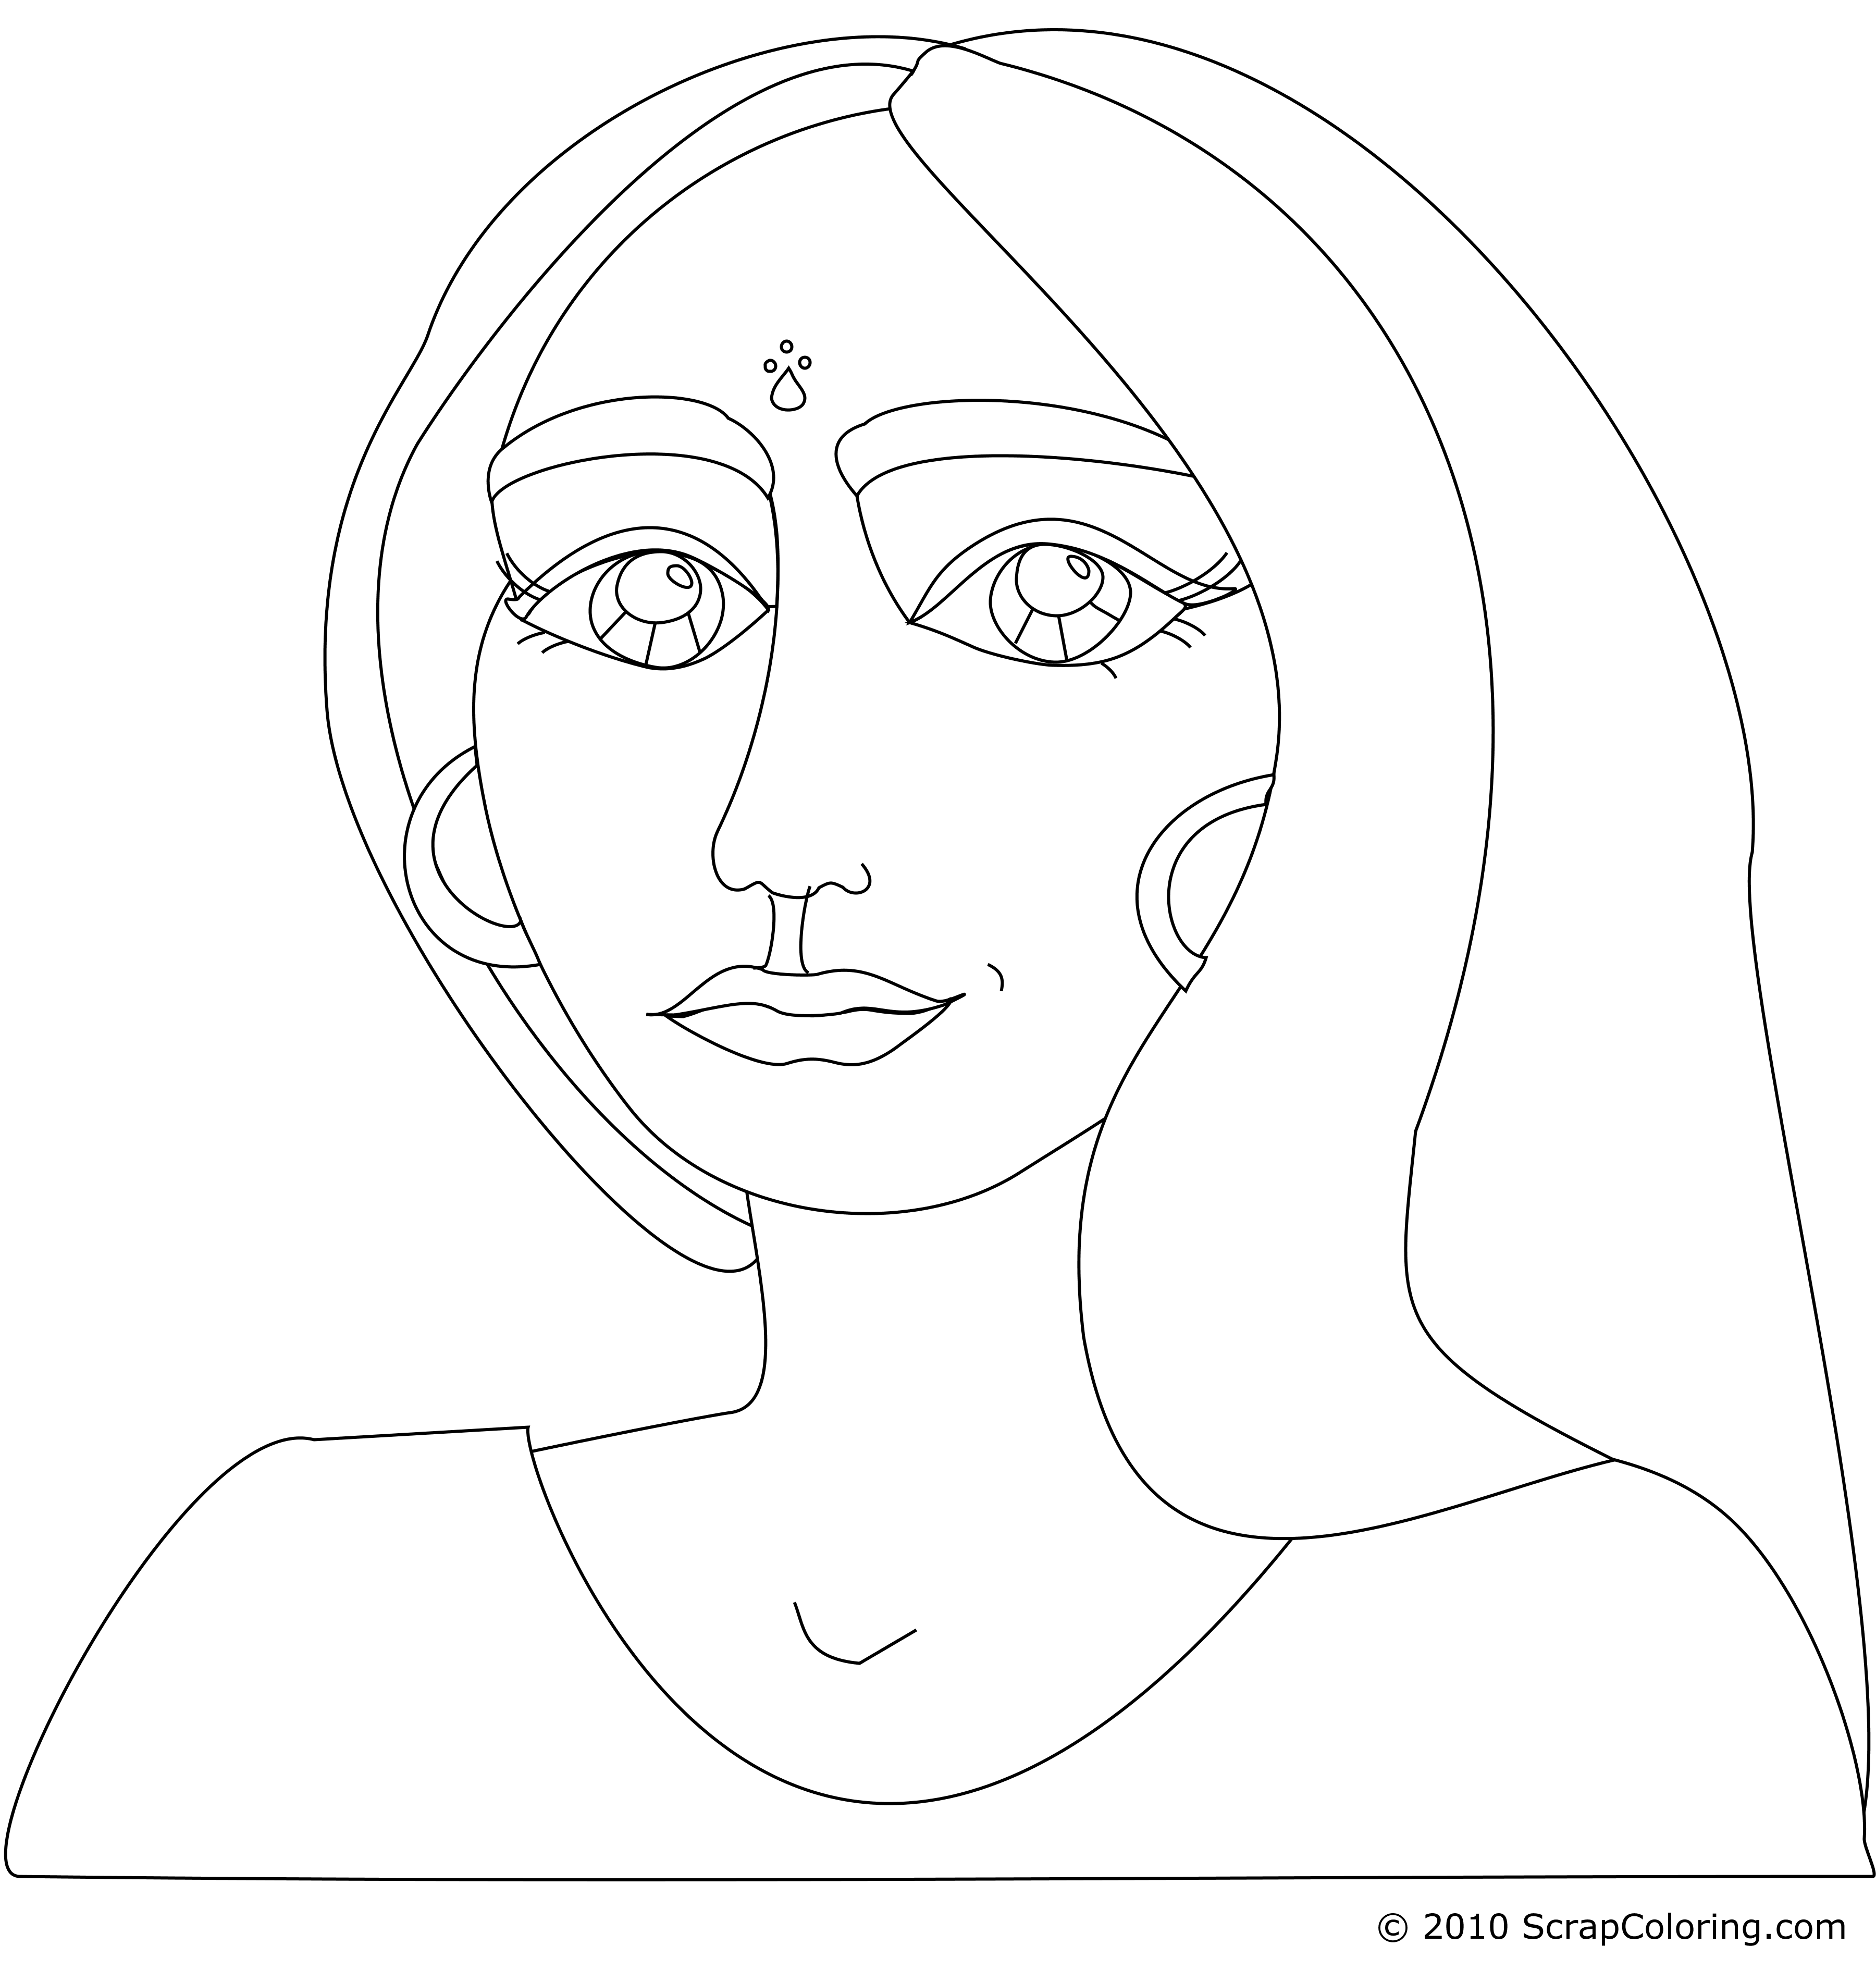 Faces clipart woman's face. Female drawing at getdrawings